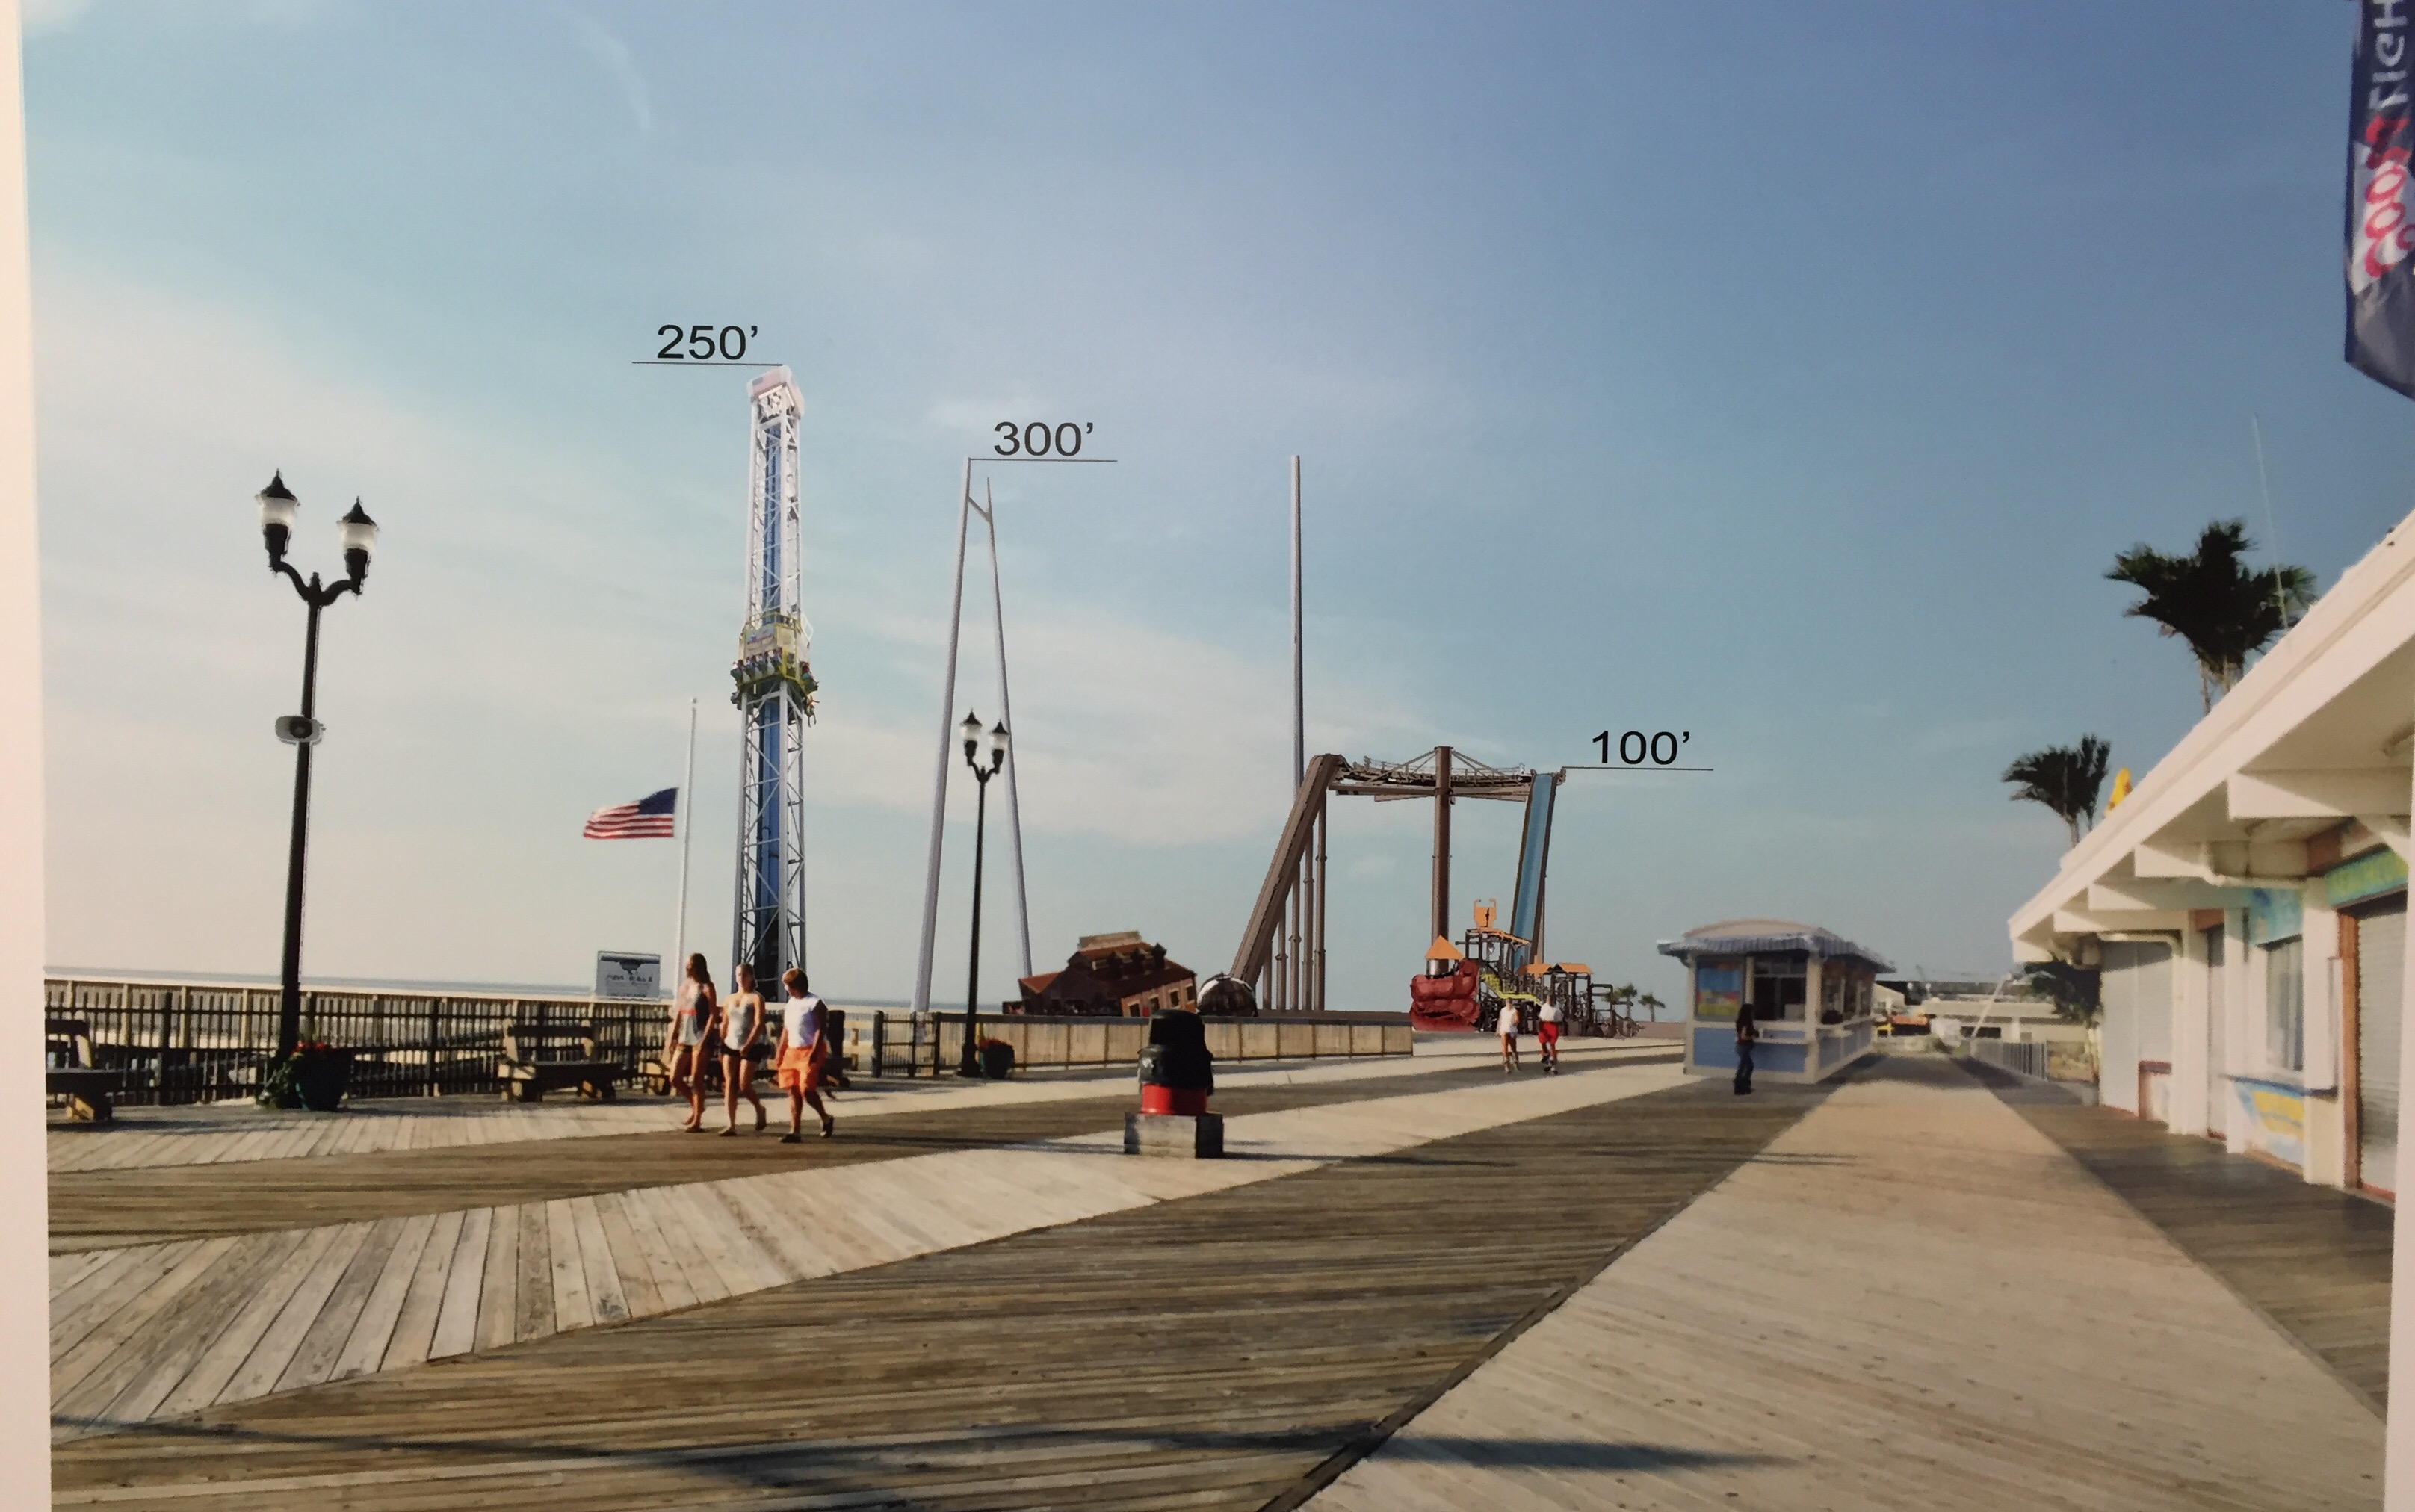 A rendering of a proposed thrill ride park at a rebuilt Funtown Pier, designed by architect Paul Barlo. (Photo: Daniel Nee)